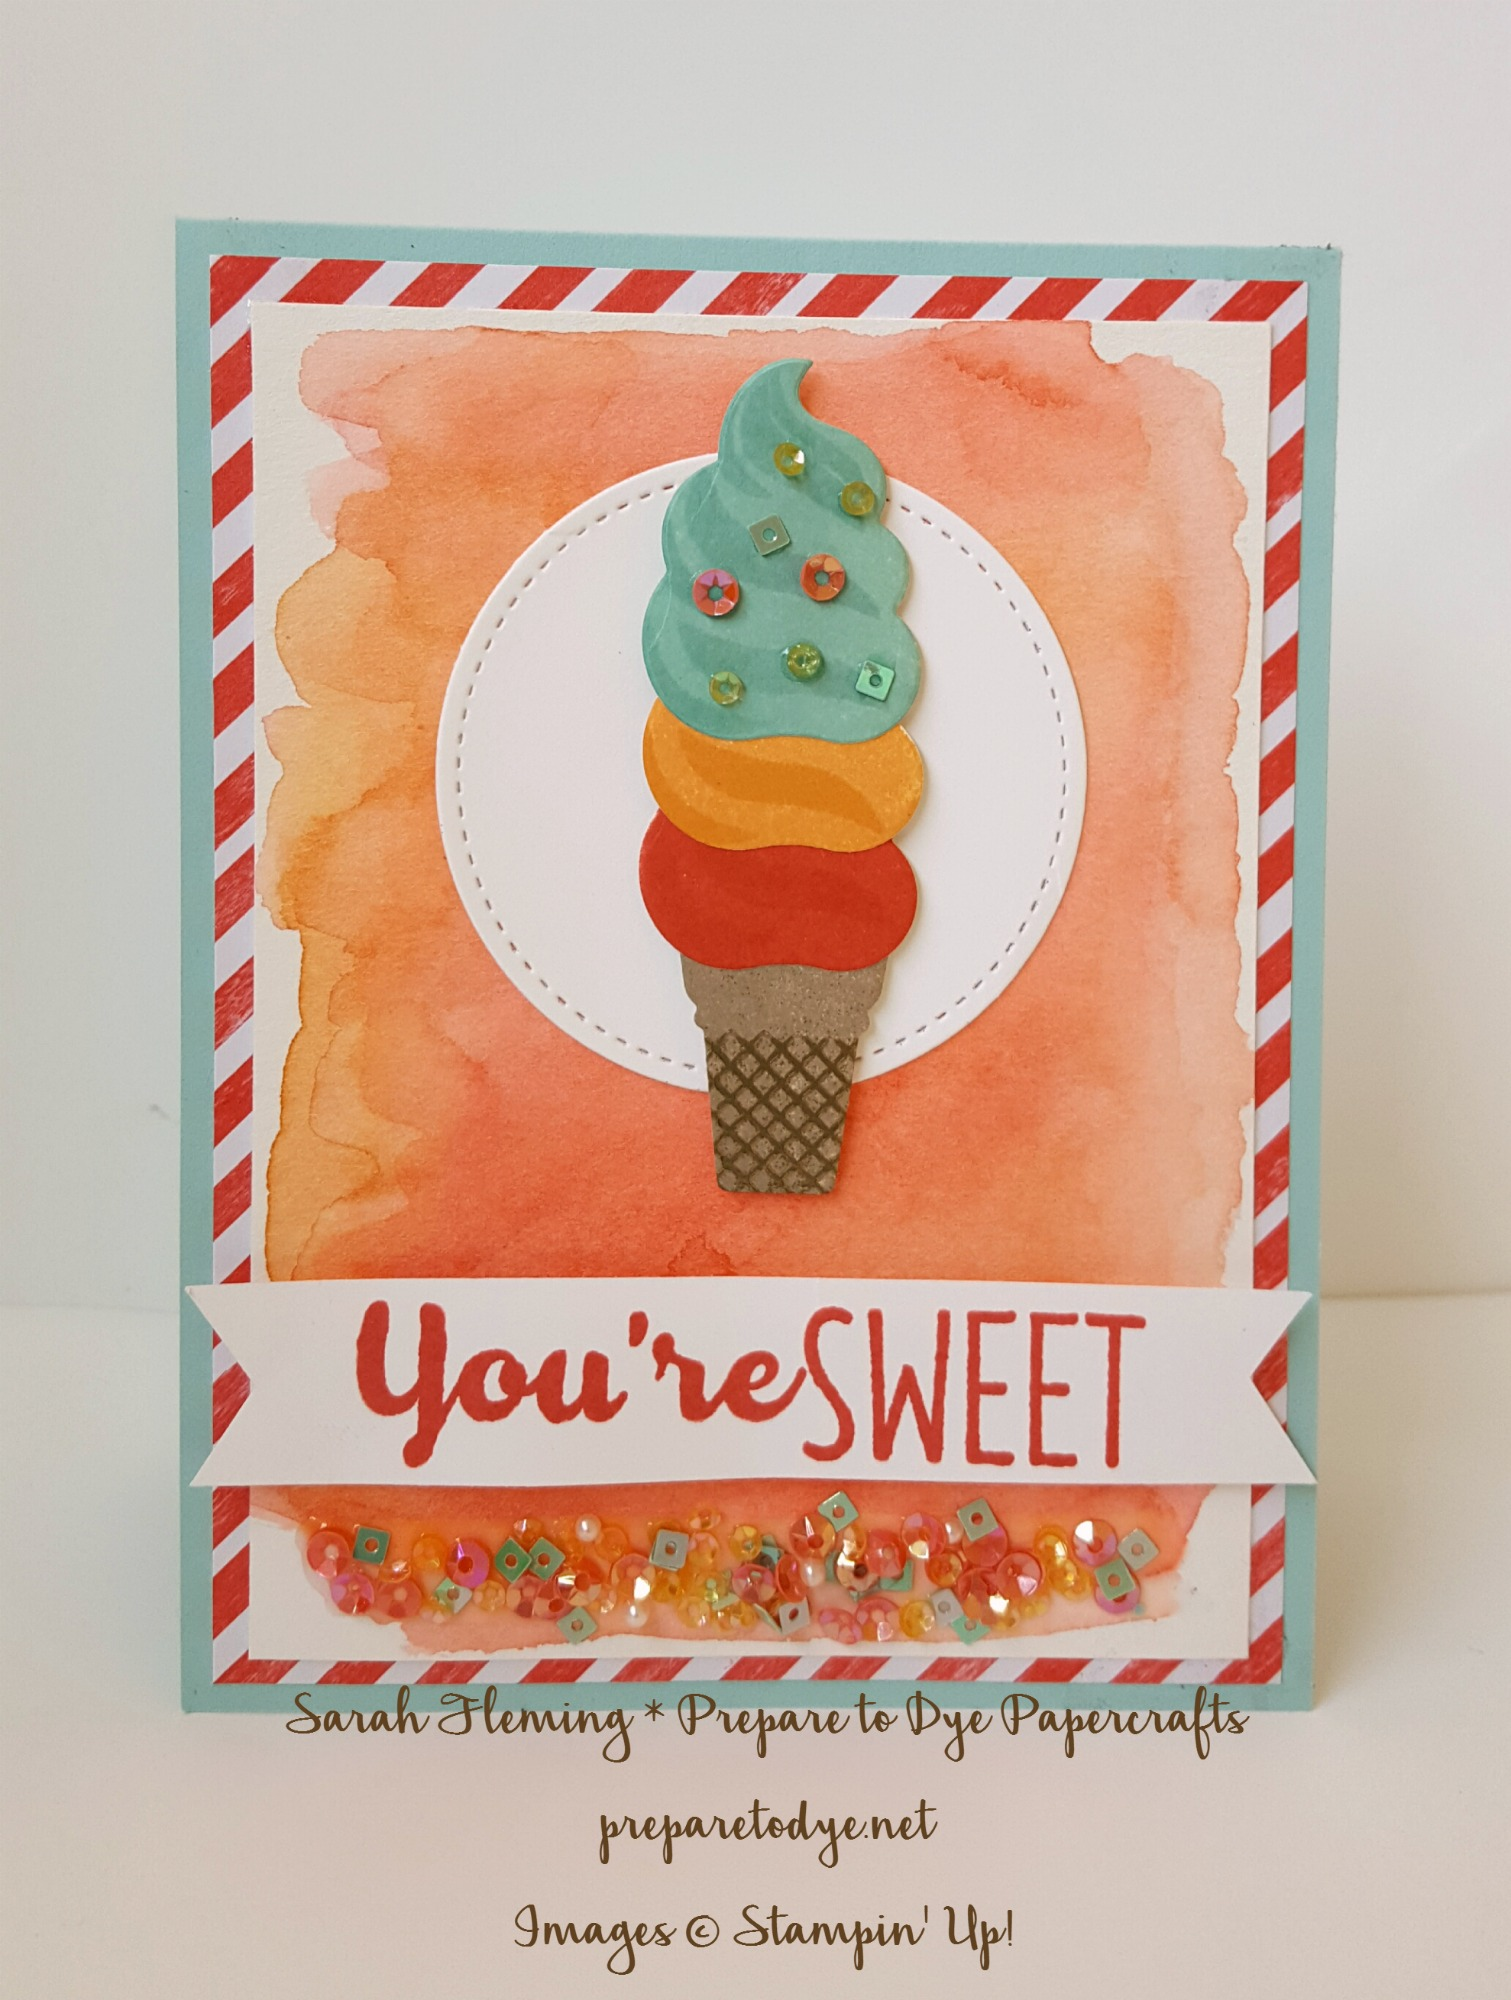 Stampin' Up! Cool Treats suite - available January 2017 - Sarah Fleming - Prepare to Dye Papercrafts - shop with me if you're in the USA!